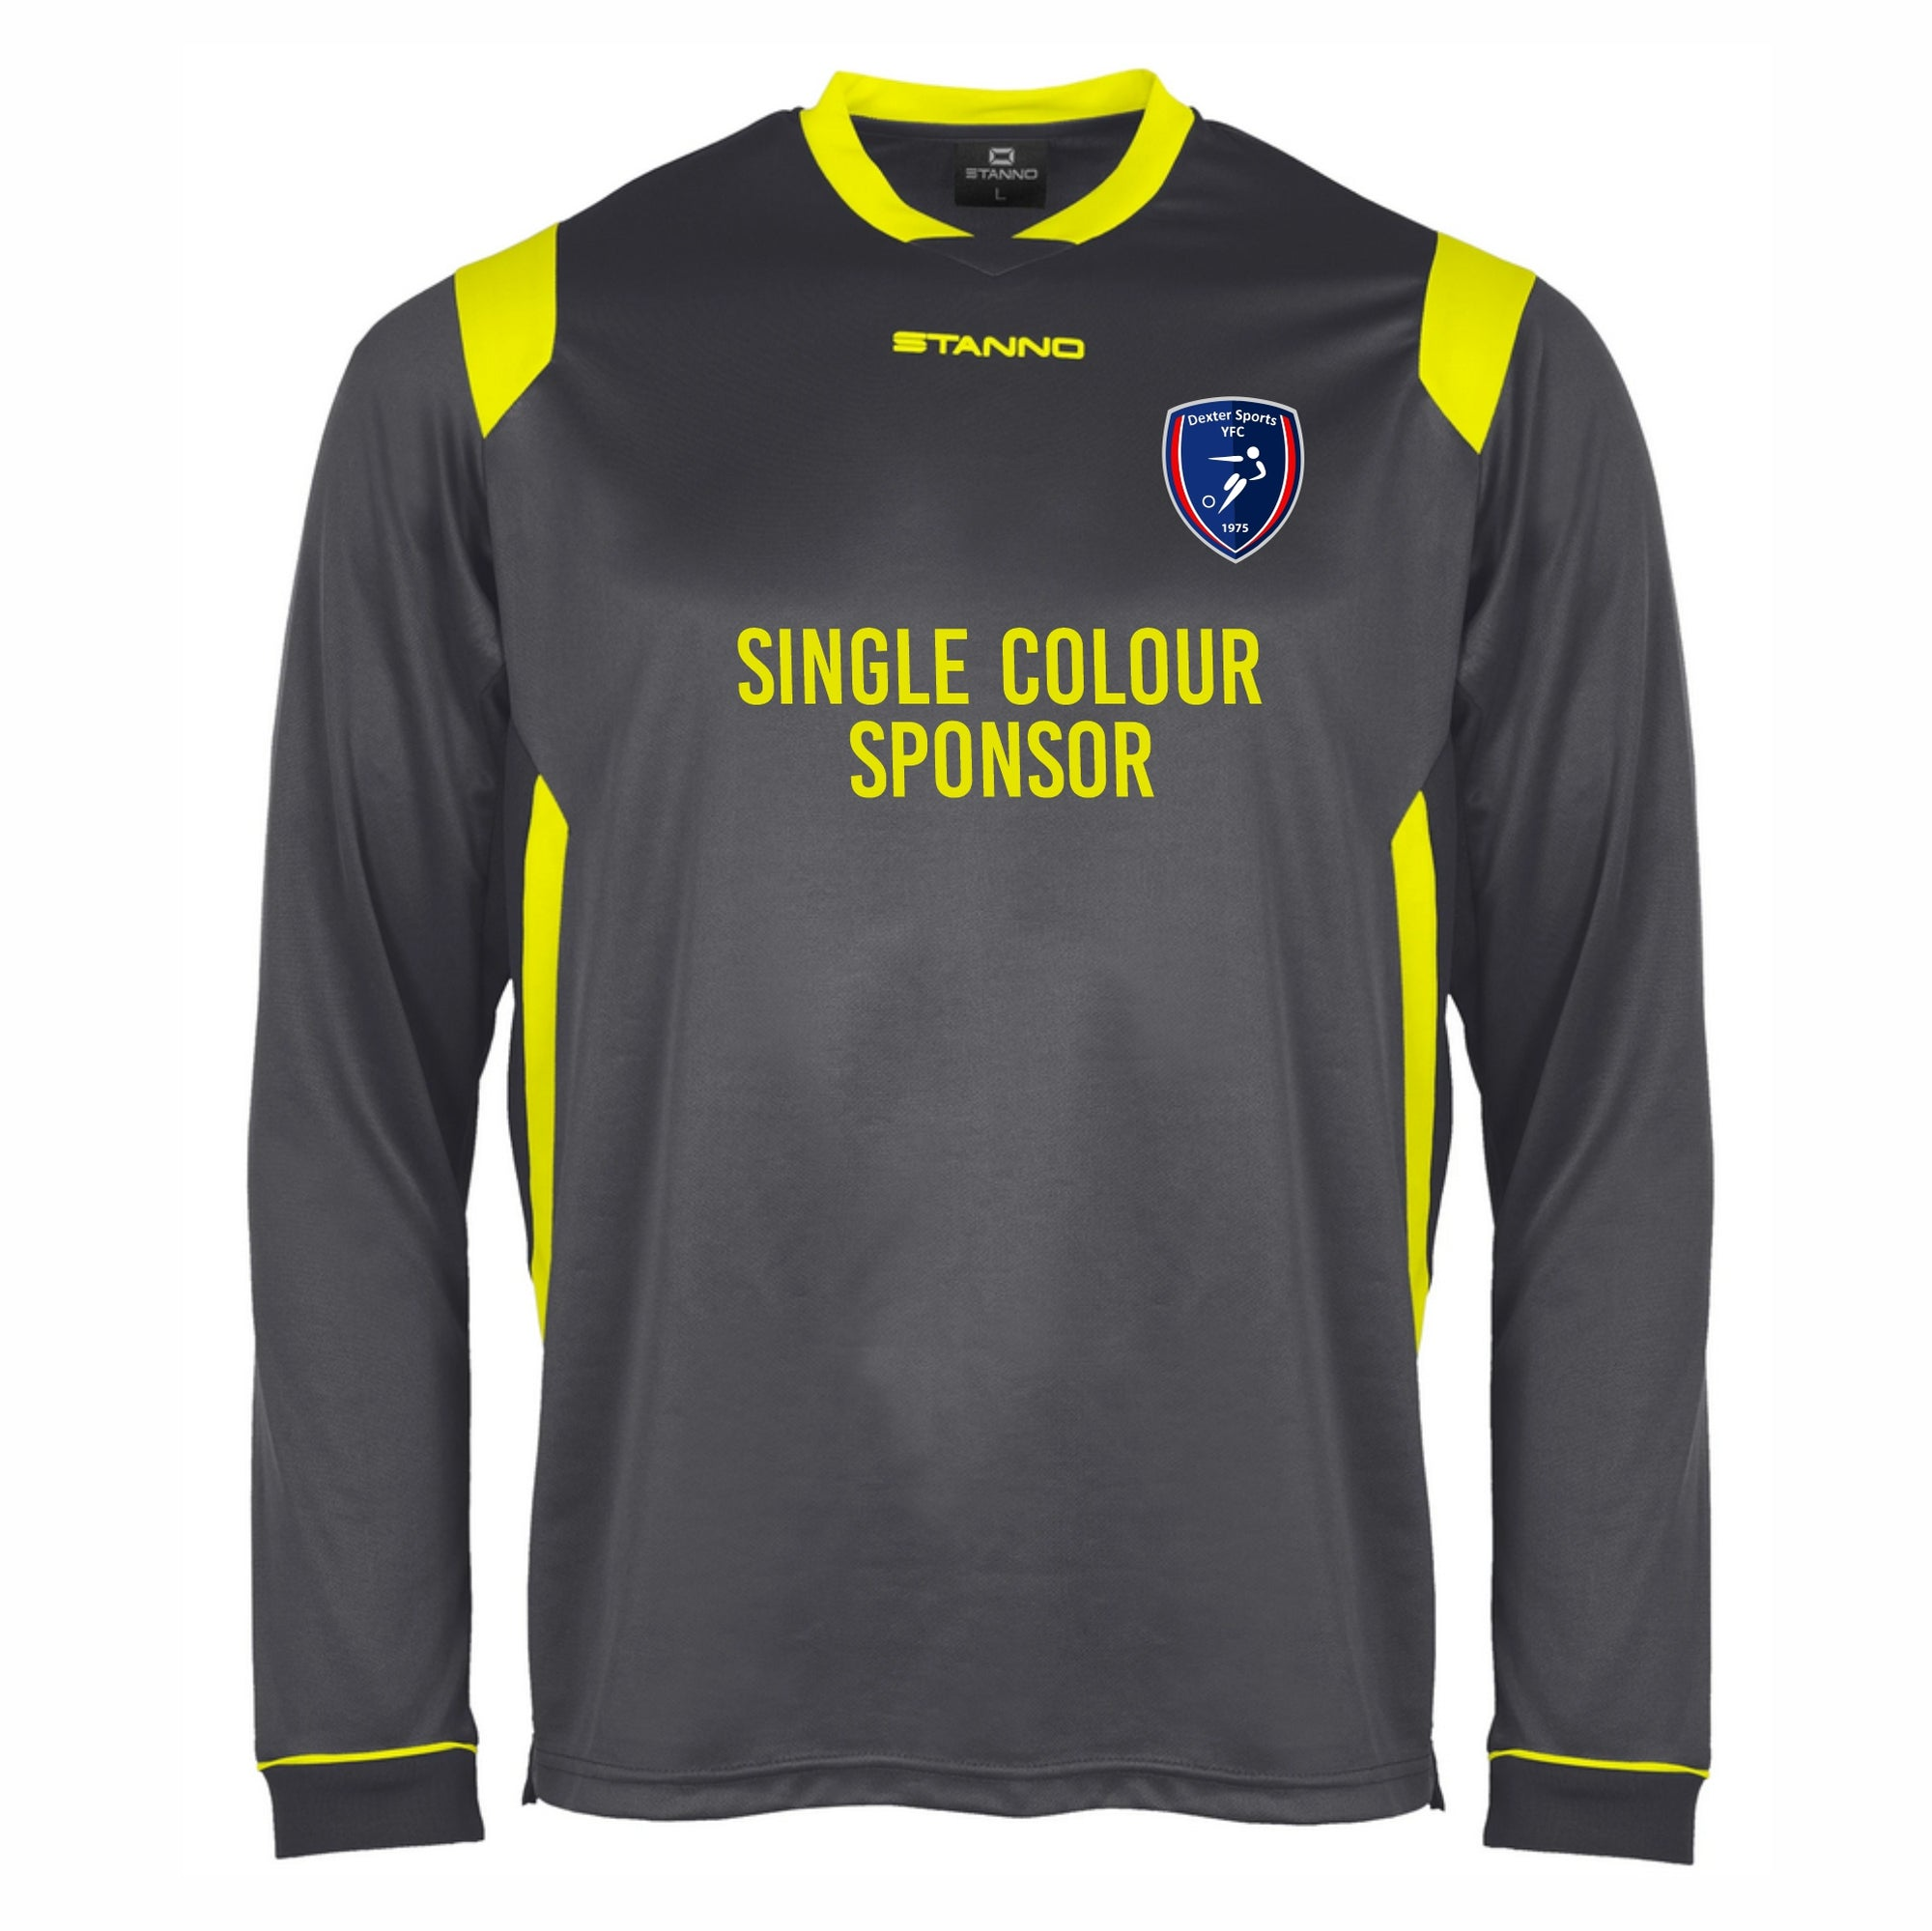 Dexters - Away - Stanno Arezzo Shirt LS - Single Colour